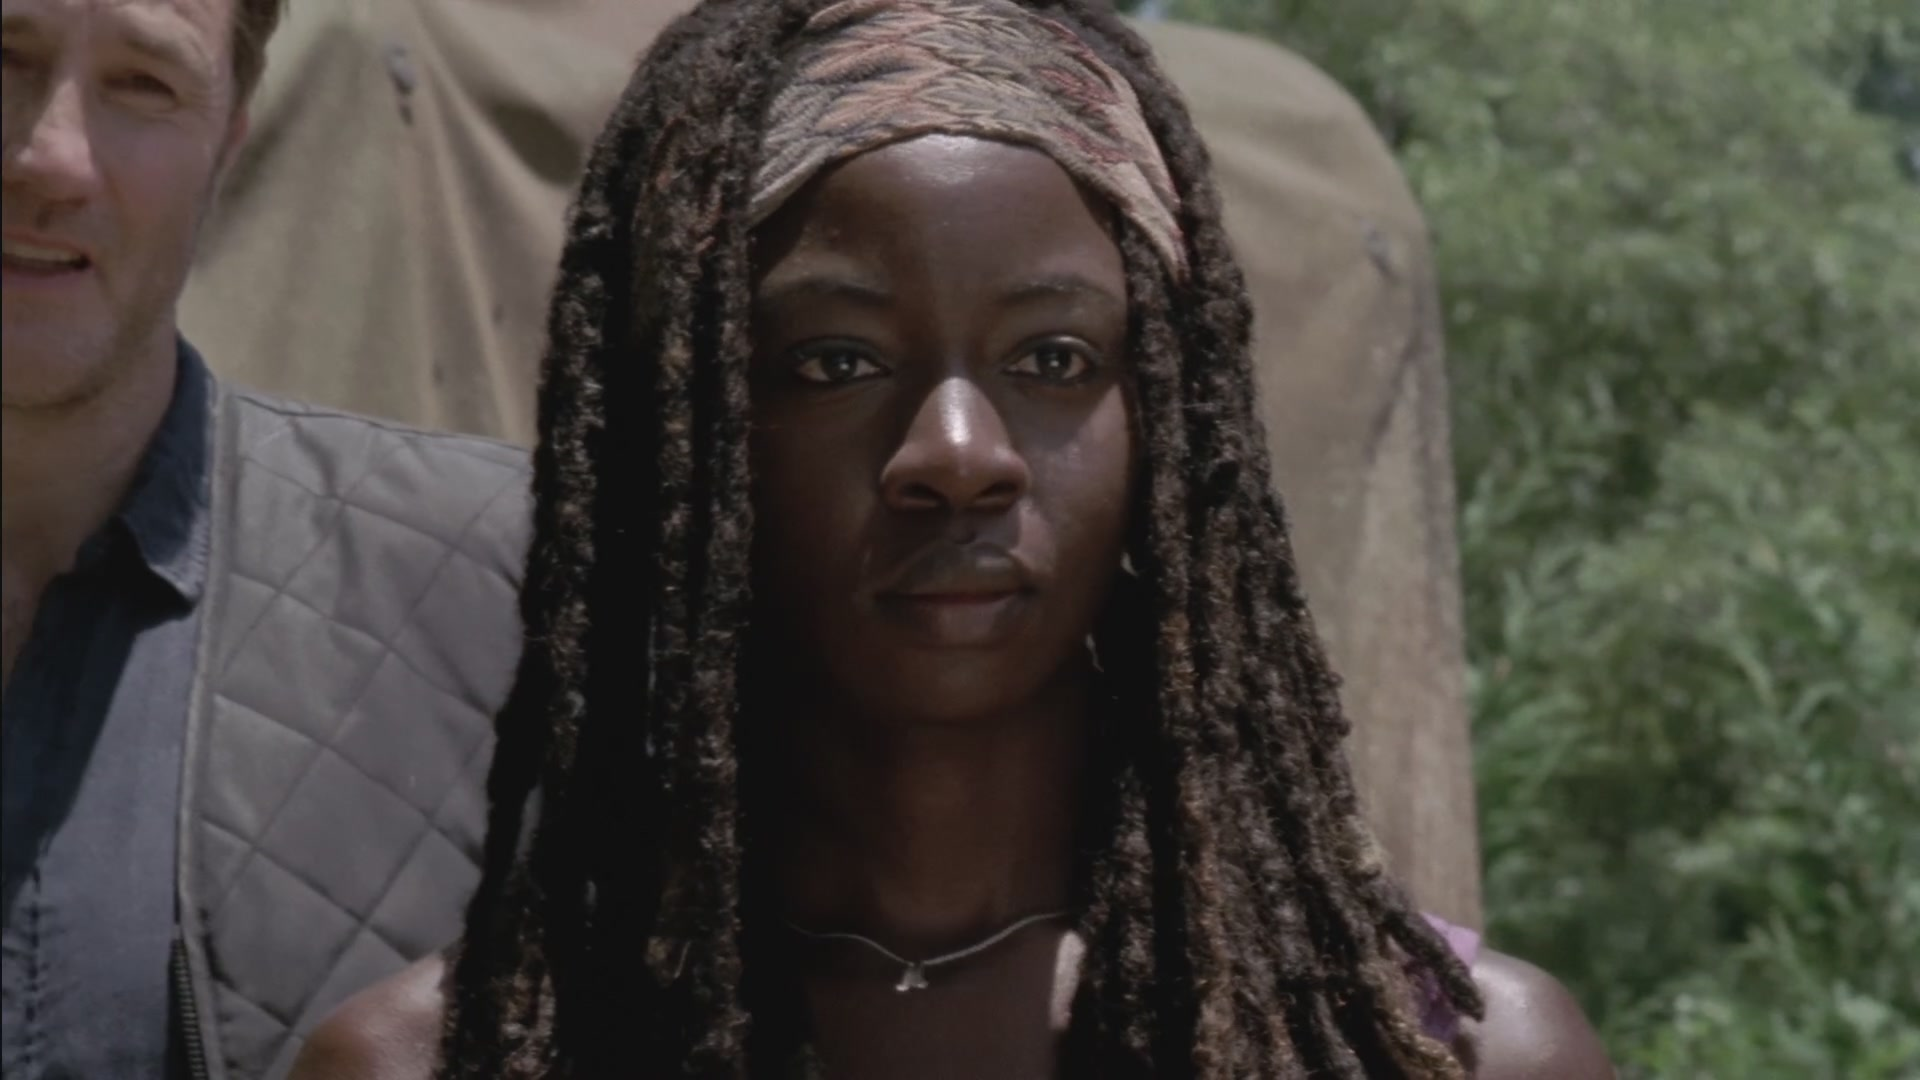 'The Walking Dead' Season 3 Episode 4 Captures